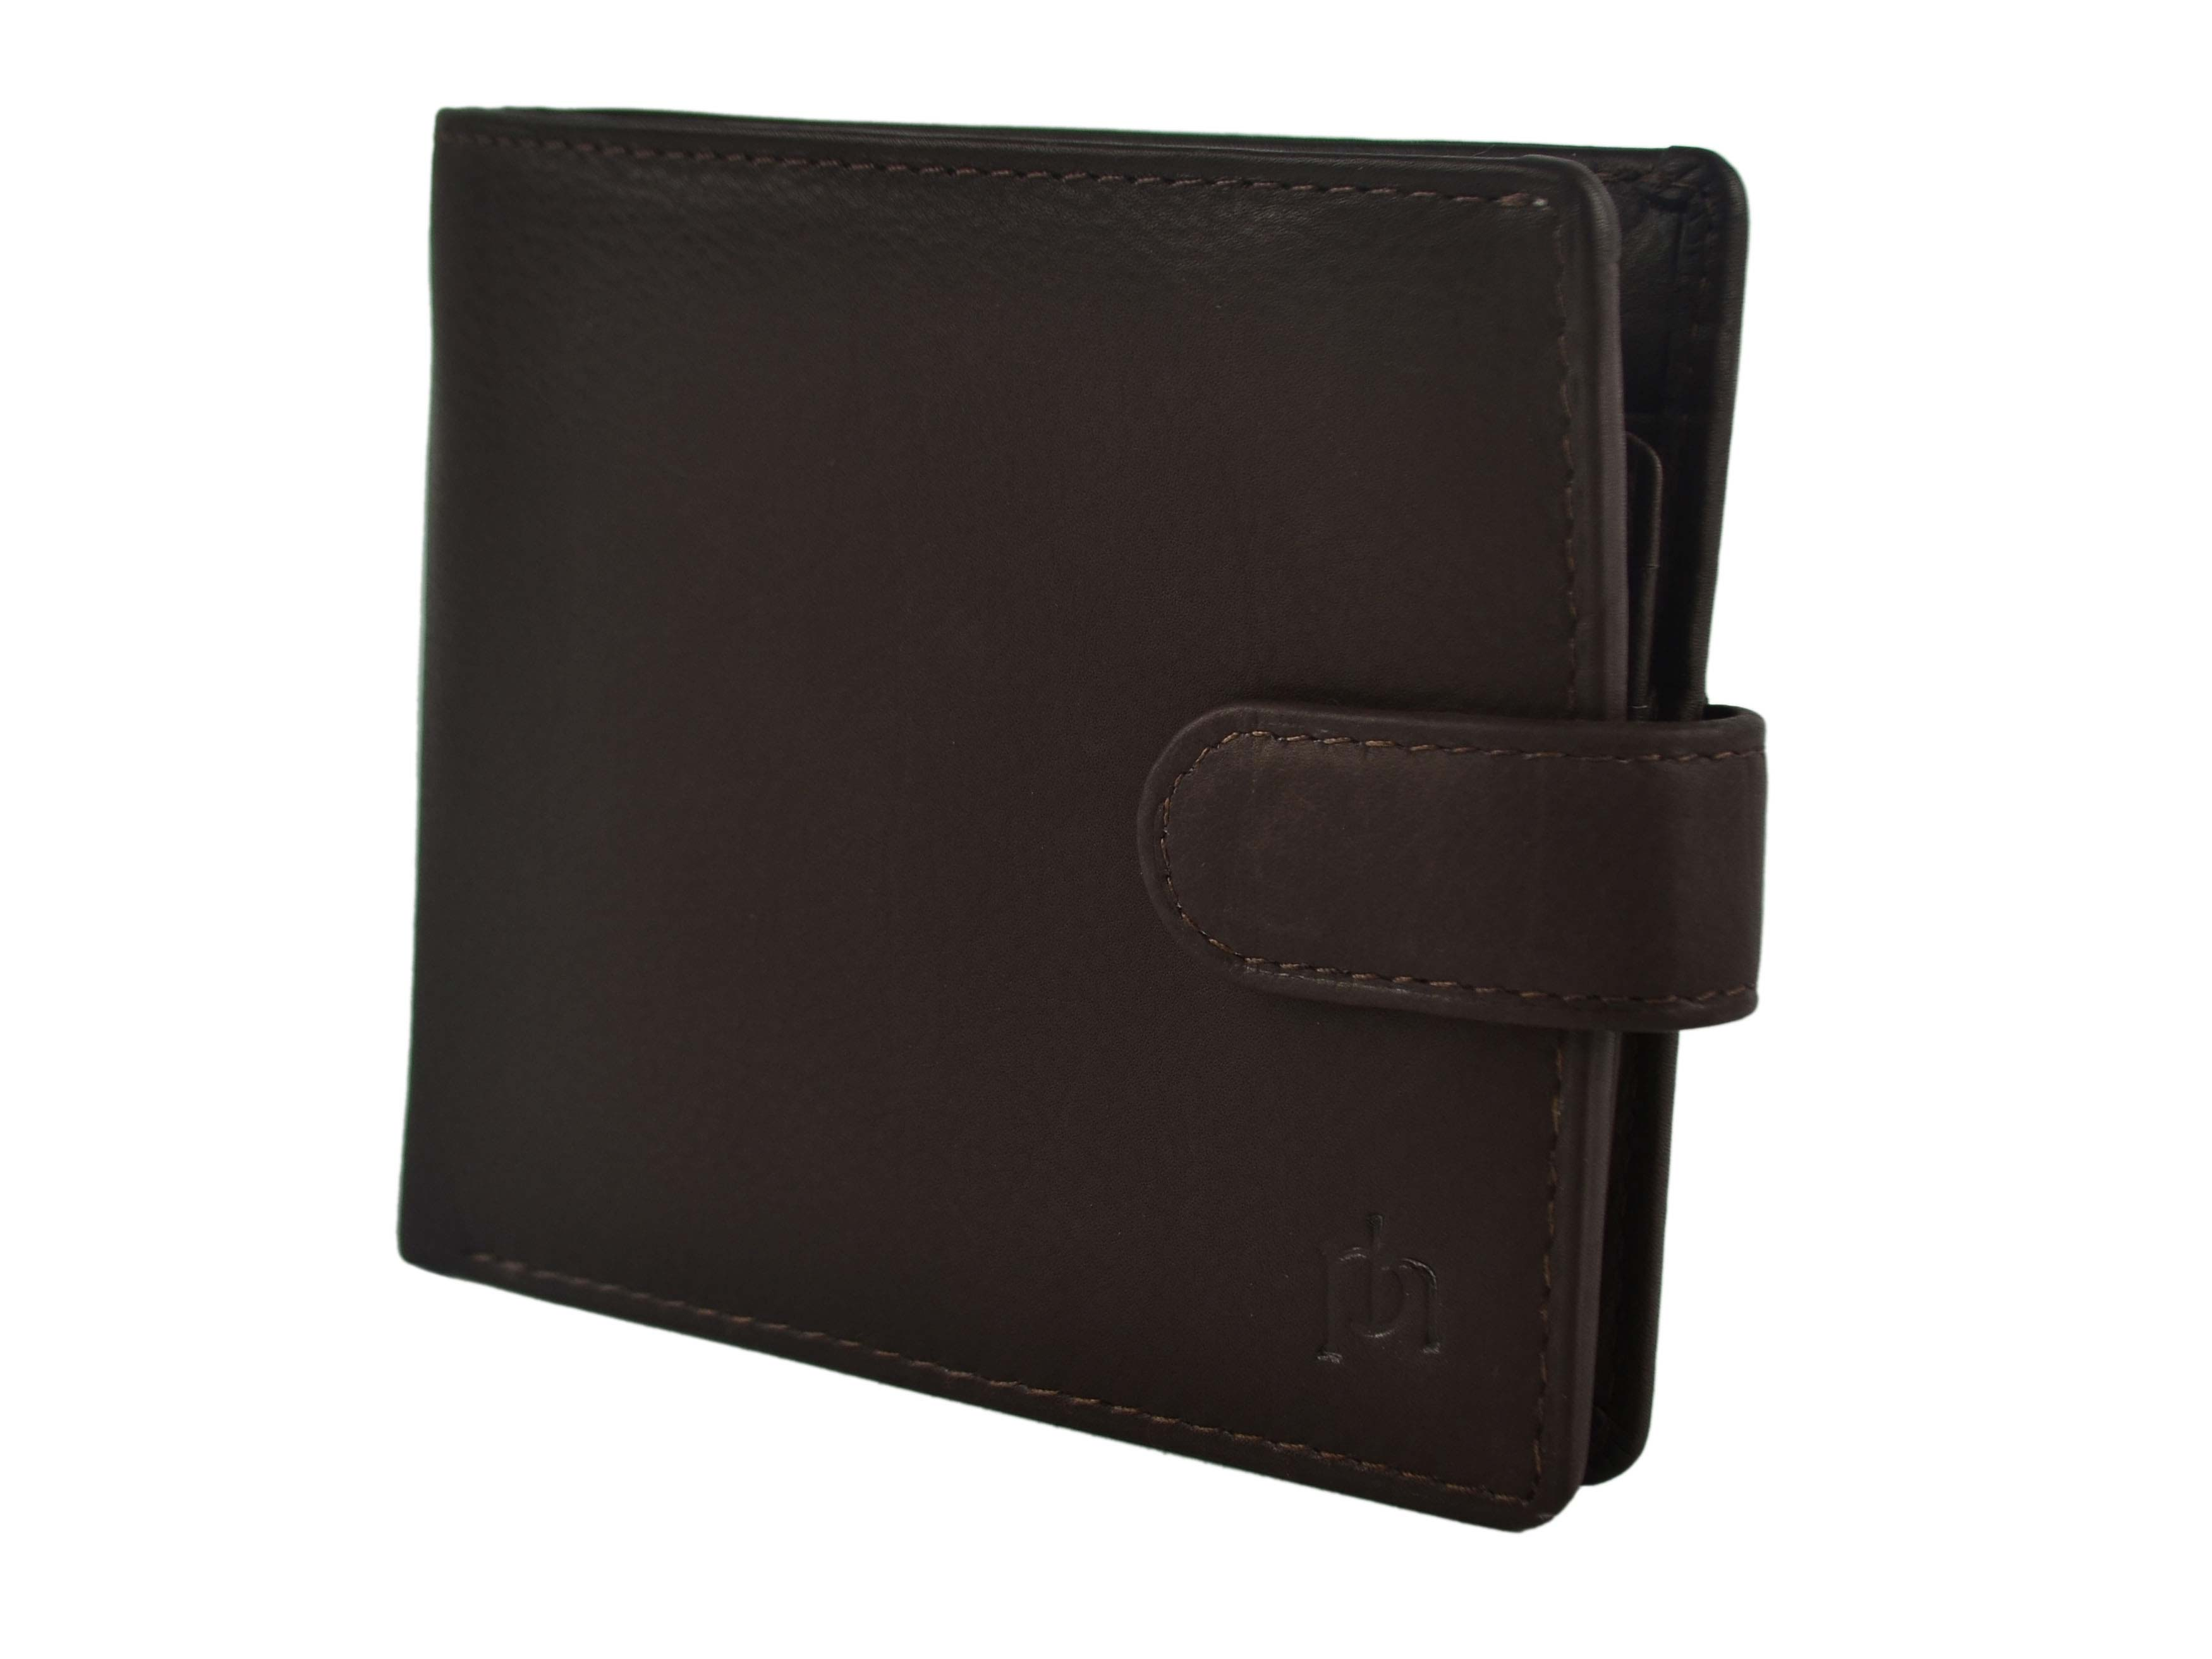 Mens-Quality-Soft-Leather-Wallet-by-Prime-Hide-Gift-Boxed-Stylish-with-Tab thumbnail 10